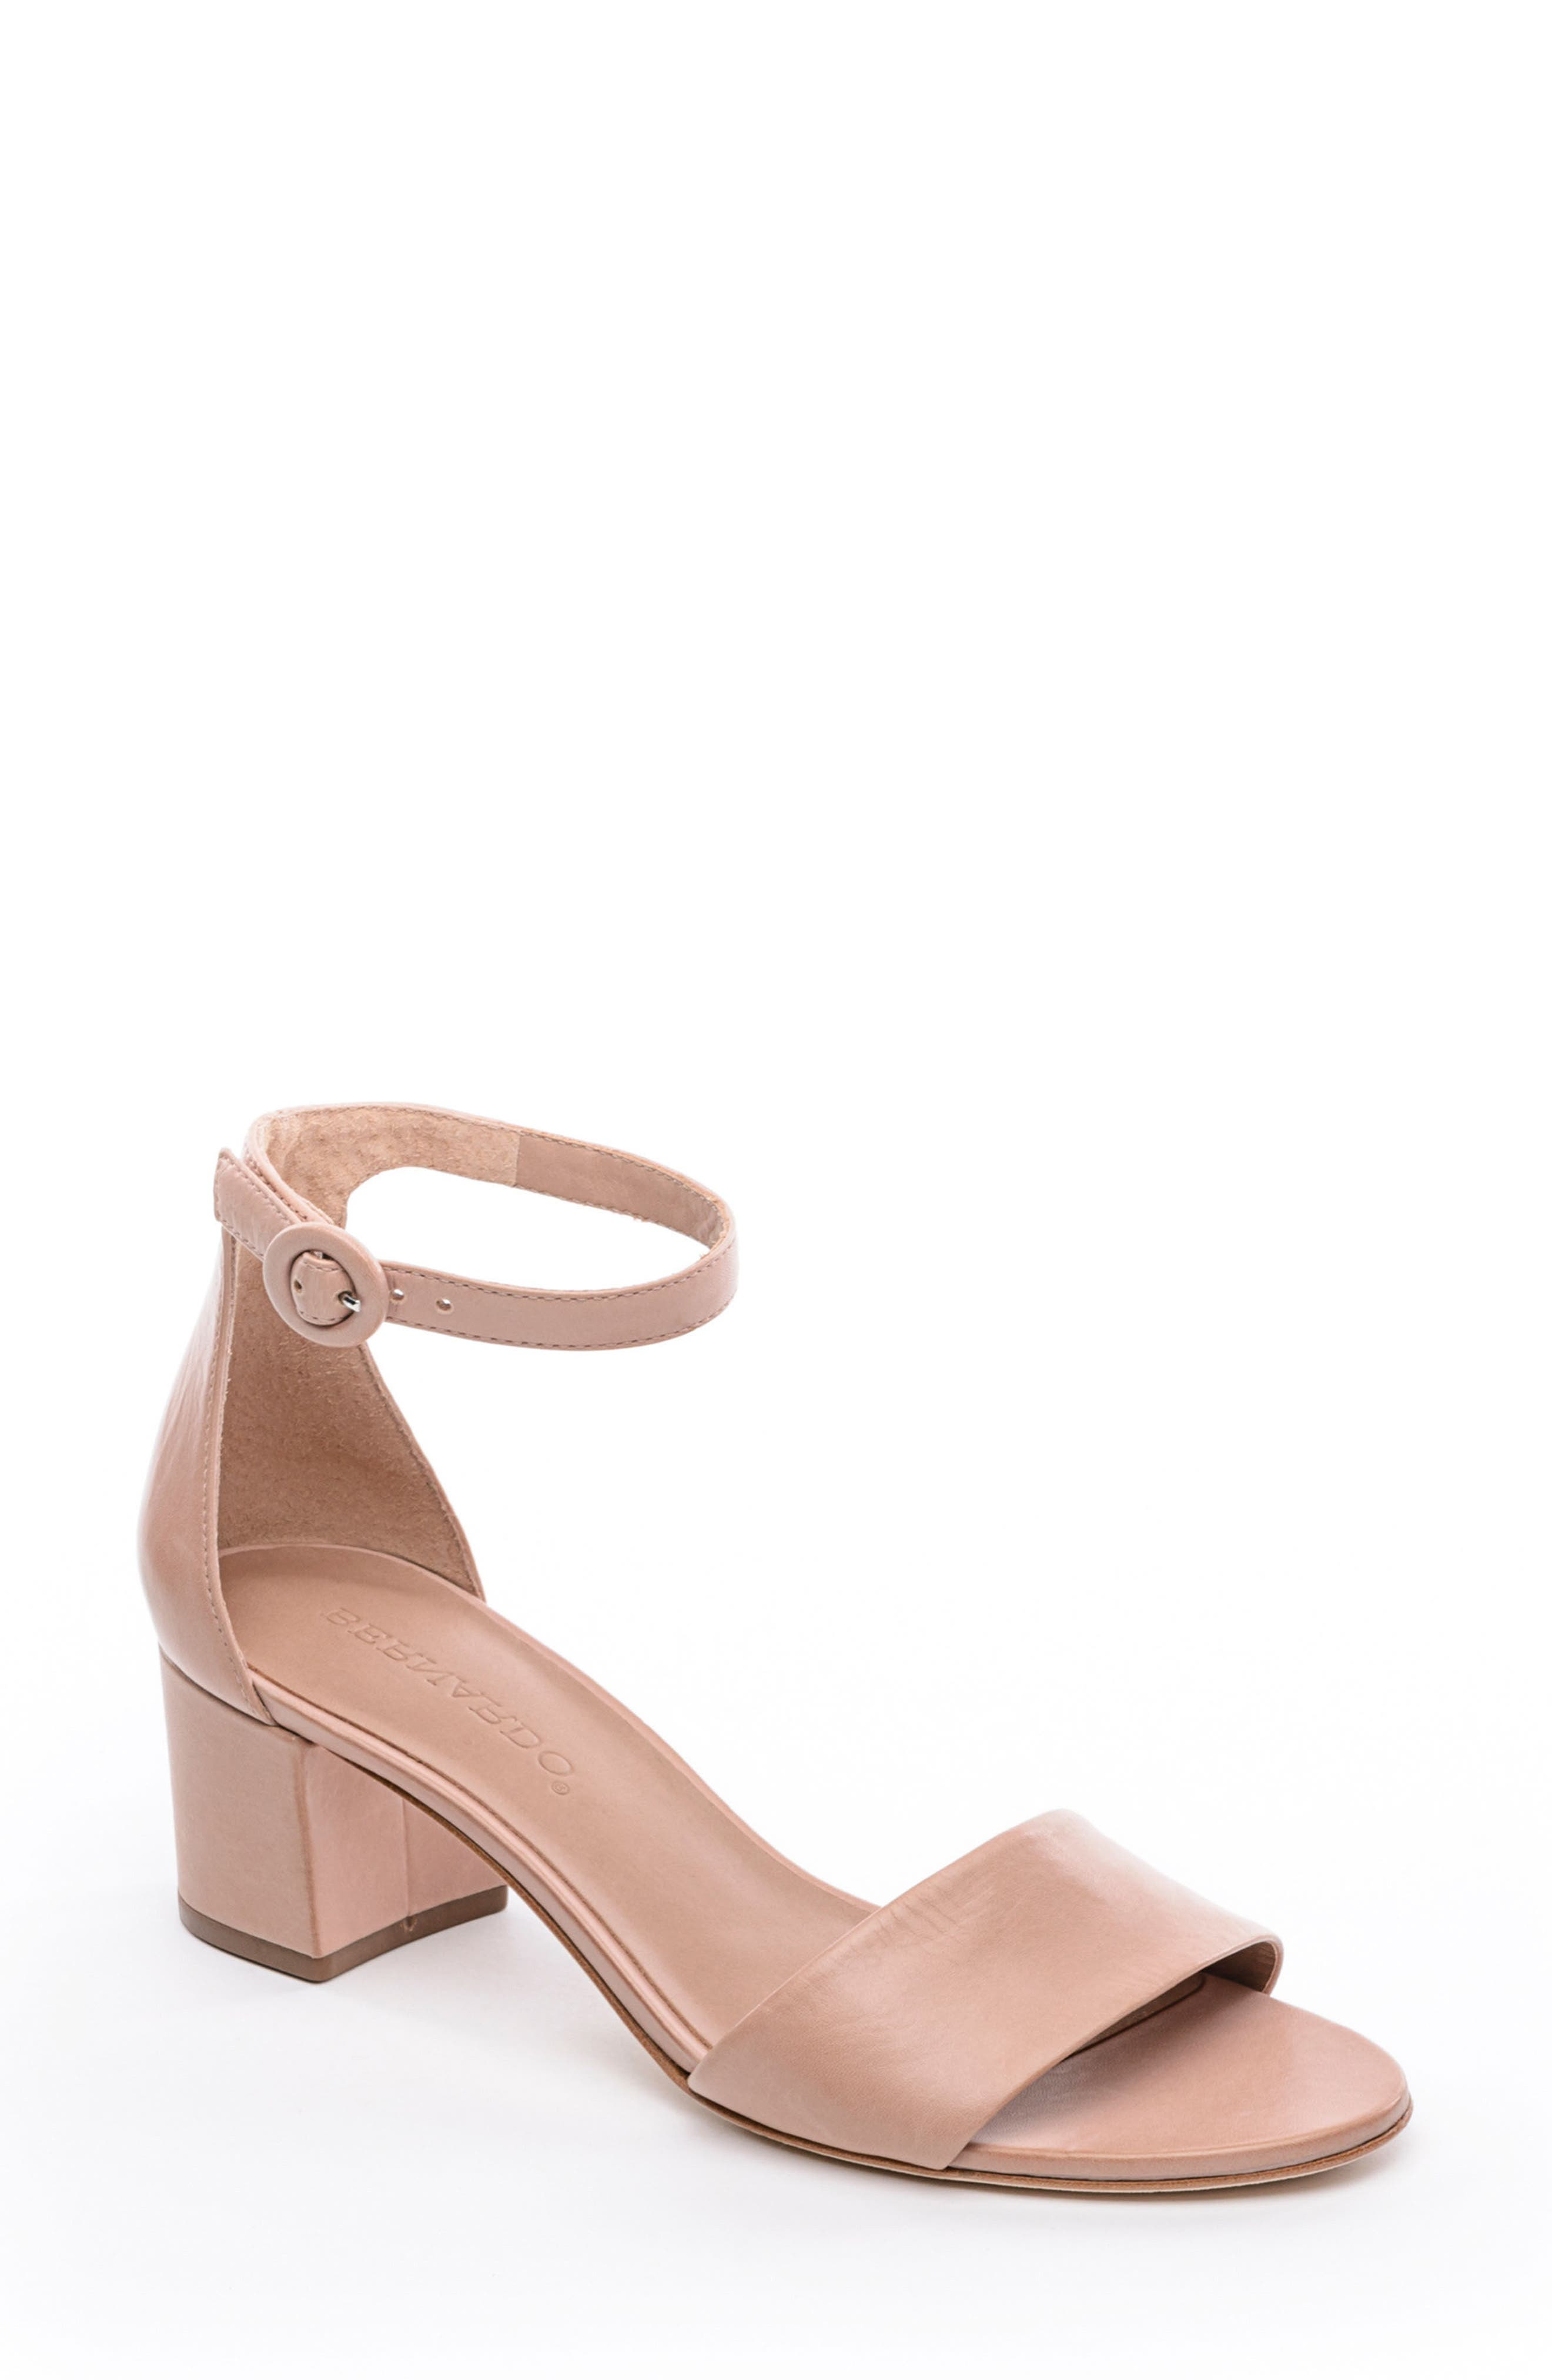 BERNARDO Belinda Ankle Strap Sandal, Main, color, BLUSH LEATHER